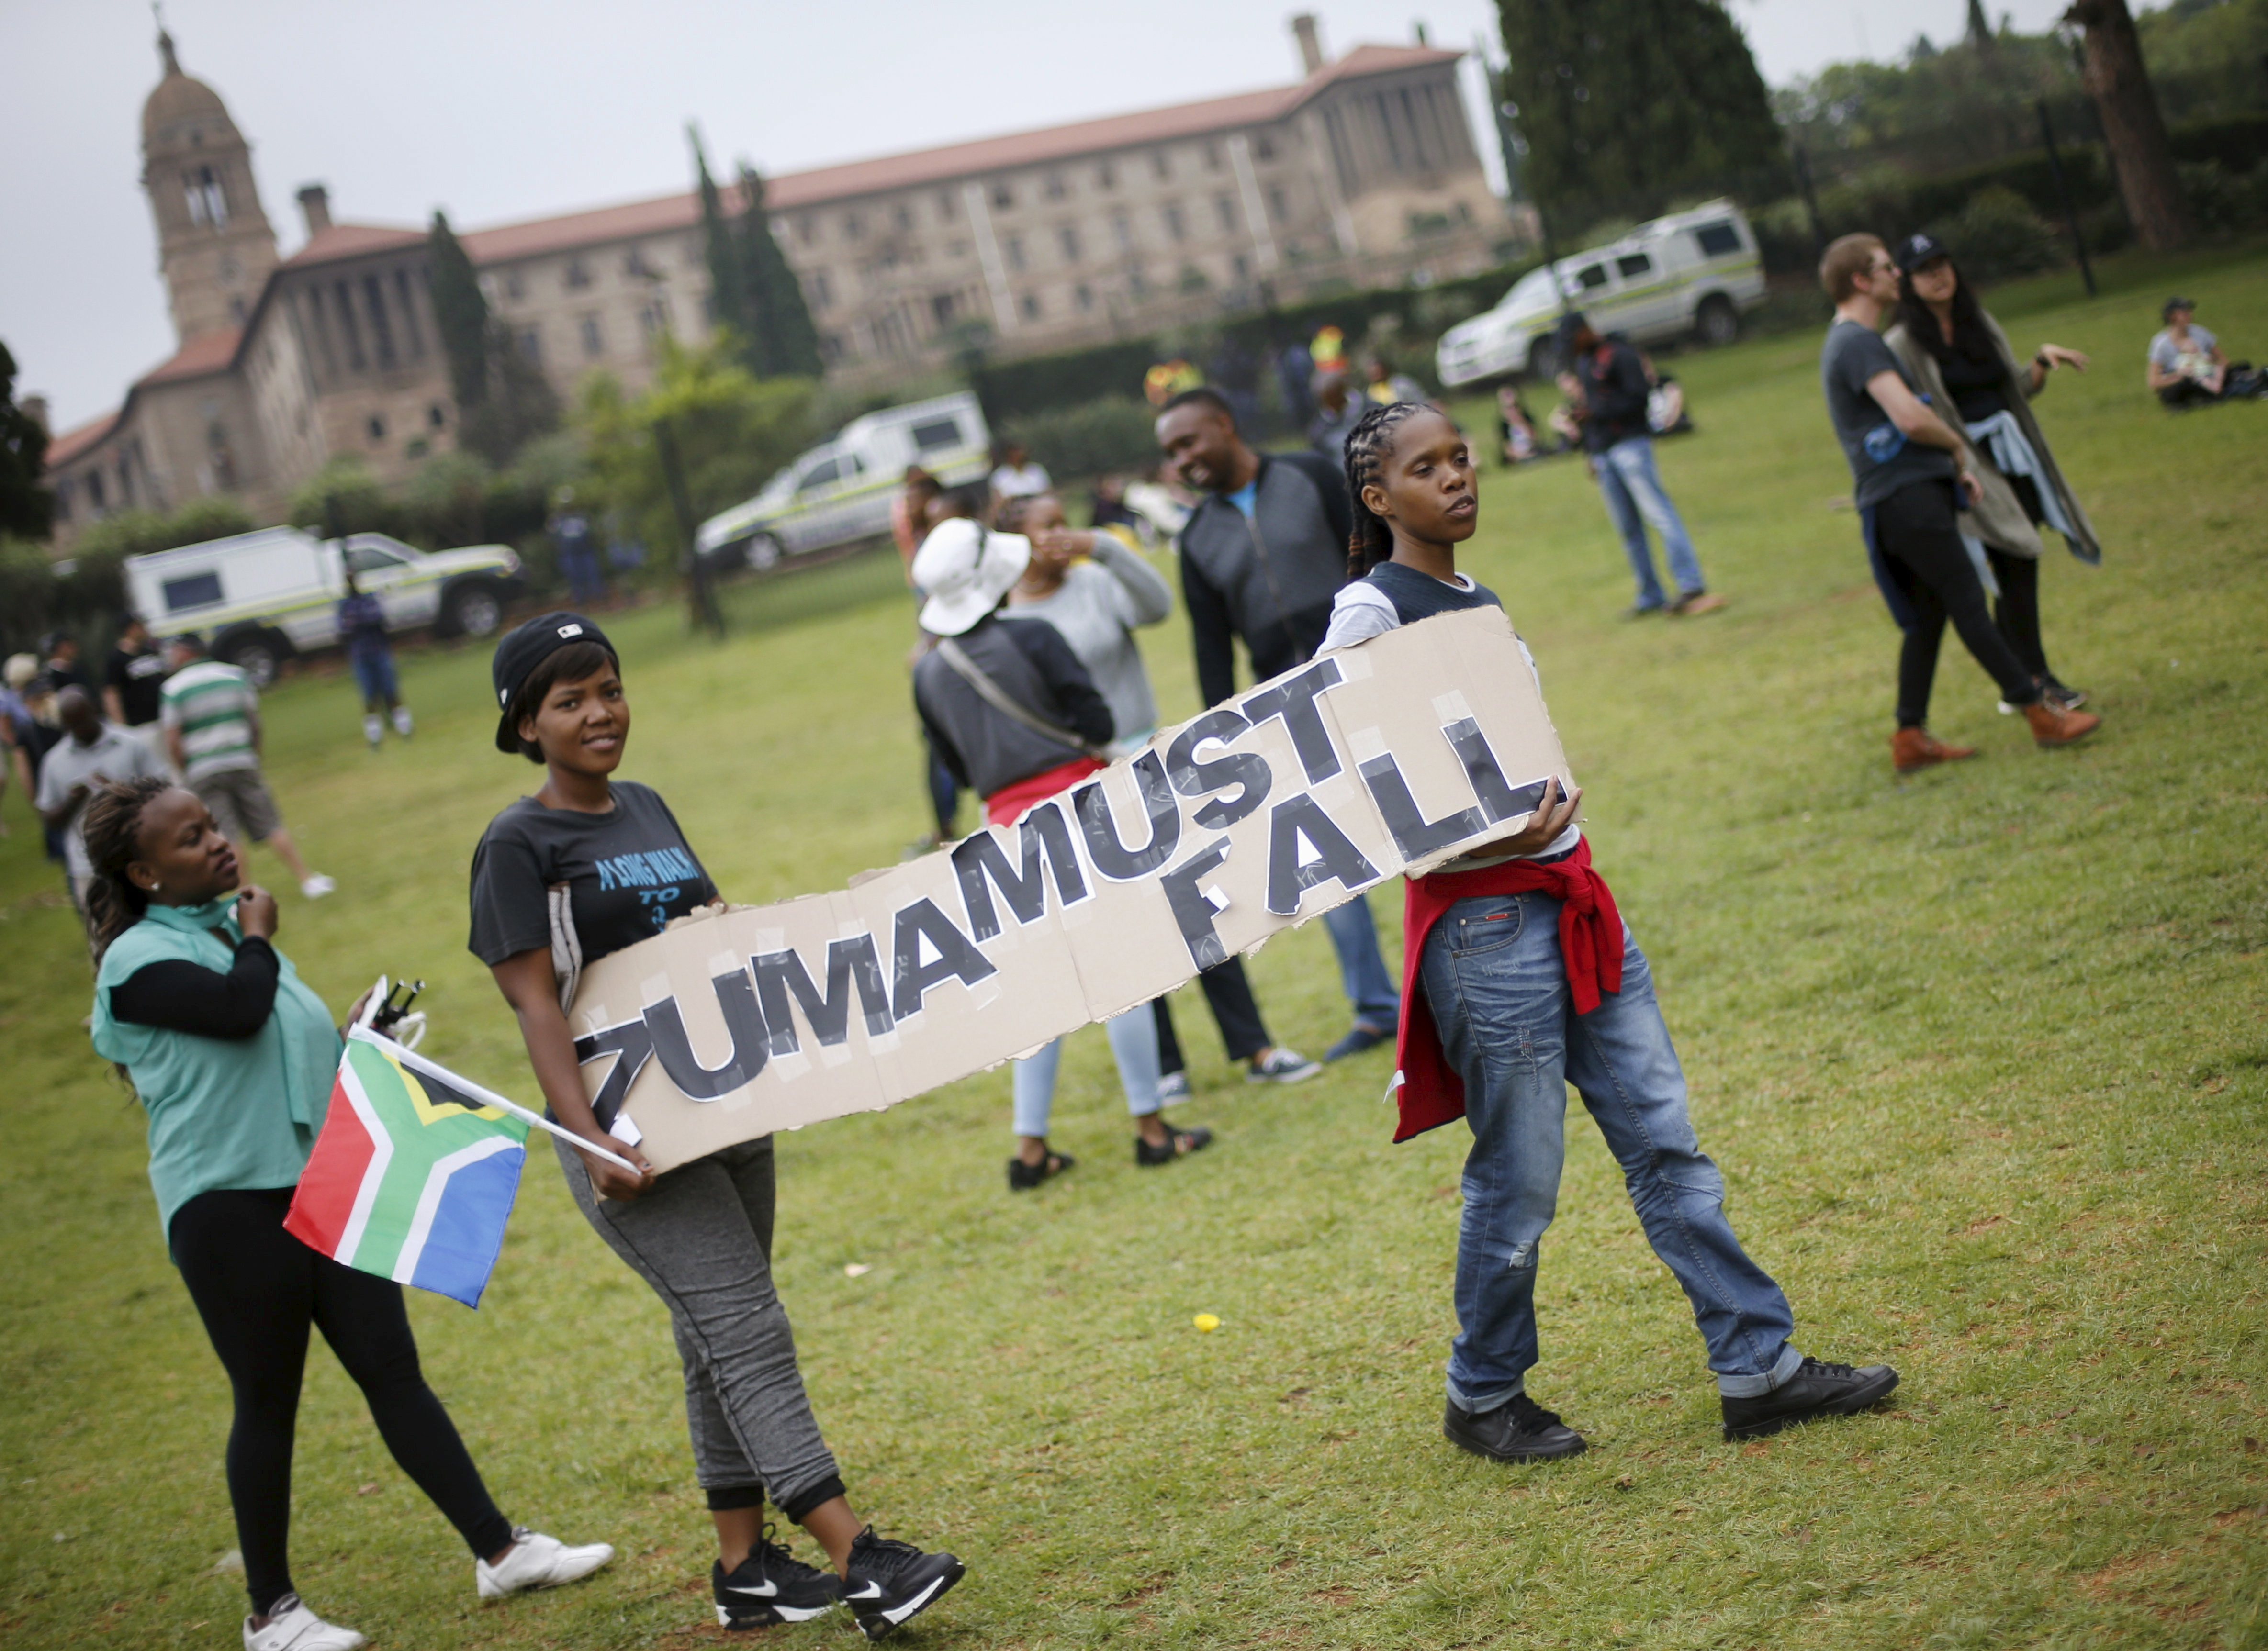 Protesters carry placards as they take part in a 'Zuma must fall' demonstration in Pretoria, South Africa December 16, 2015. REUTERS/Siphiwe Sibeko - RTX1YWWH